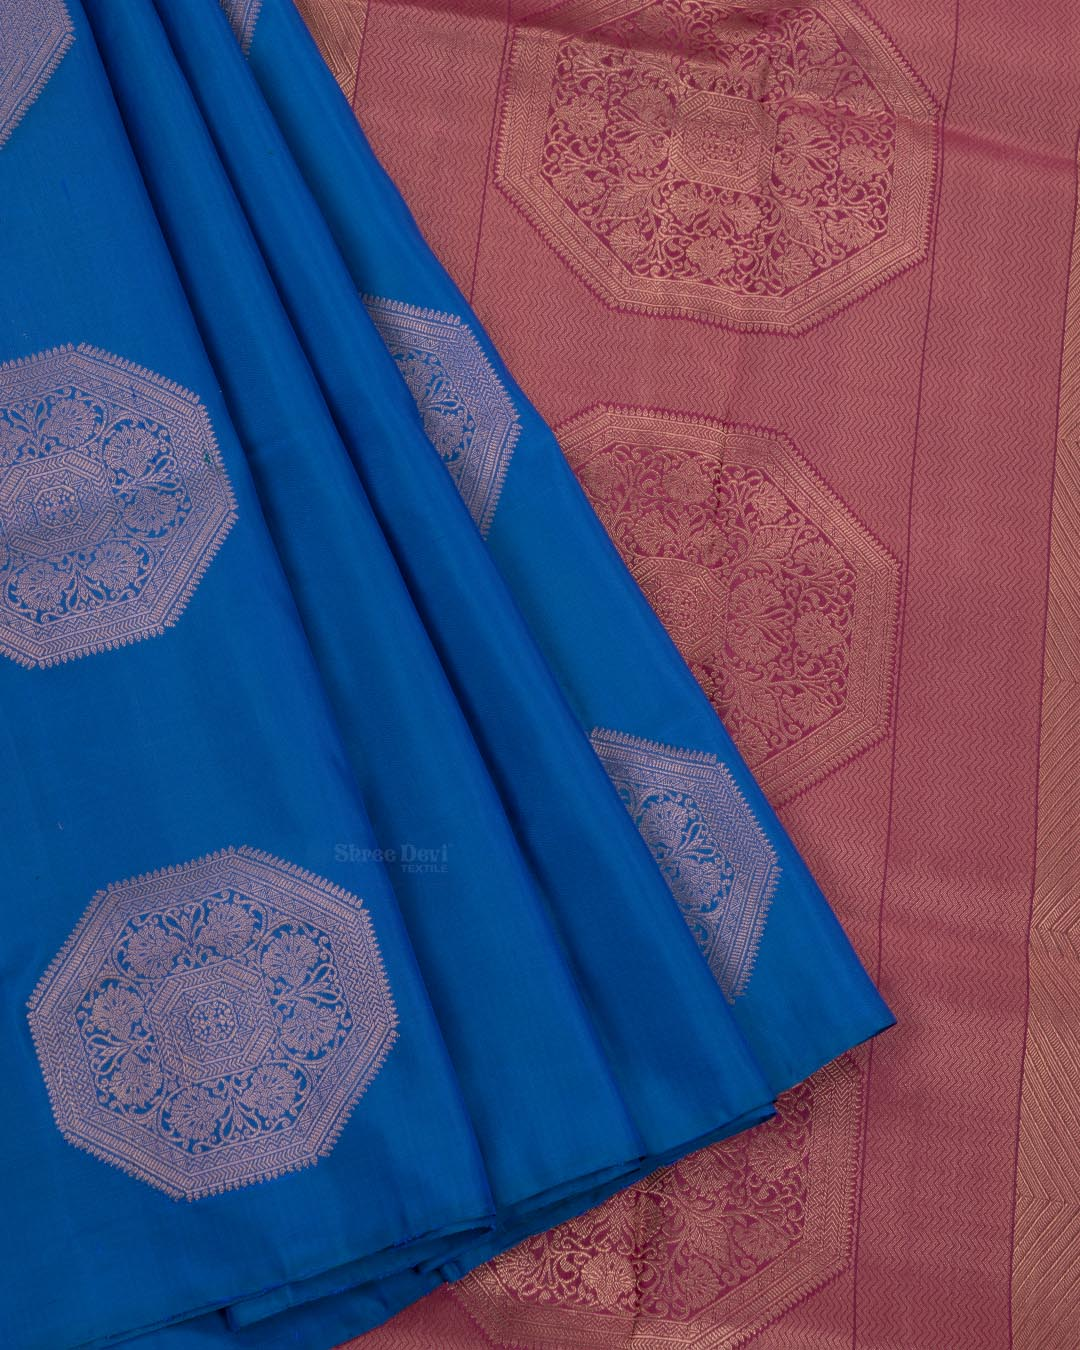 Egyptian Blue Elite Motif Kancheevarams Silk Saree with Copper Design Floral Zari Motifs